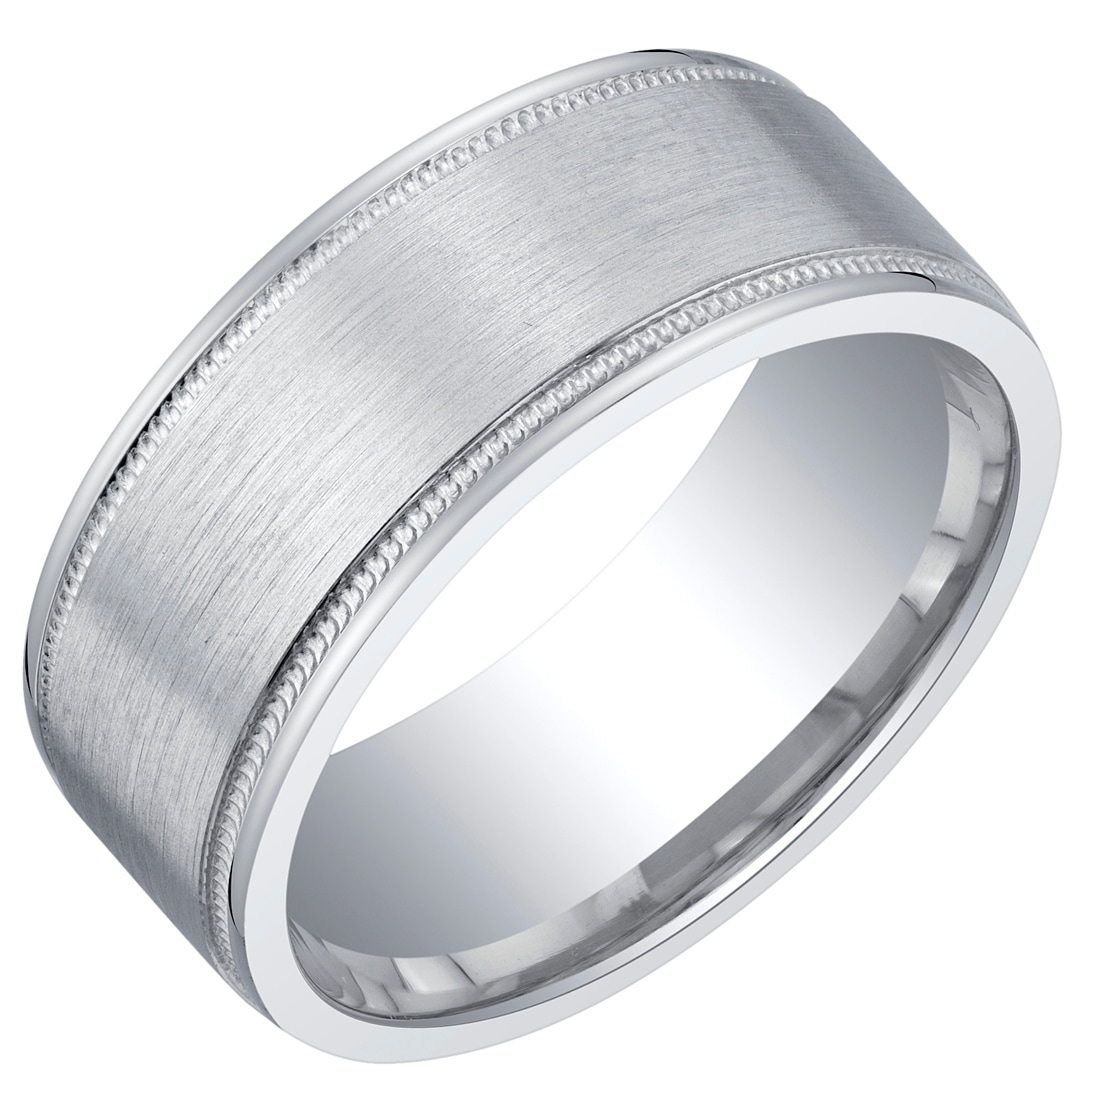 This is a photo of Mens Classic Sterling Silver Wedding Ring Band in Milgrain Brushed Matte 42mm Comfort Fit